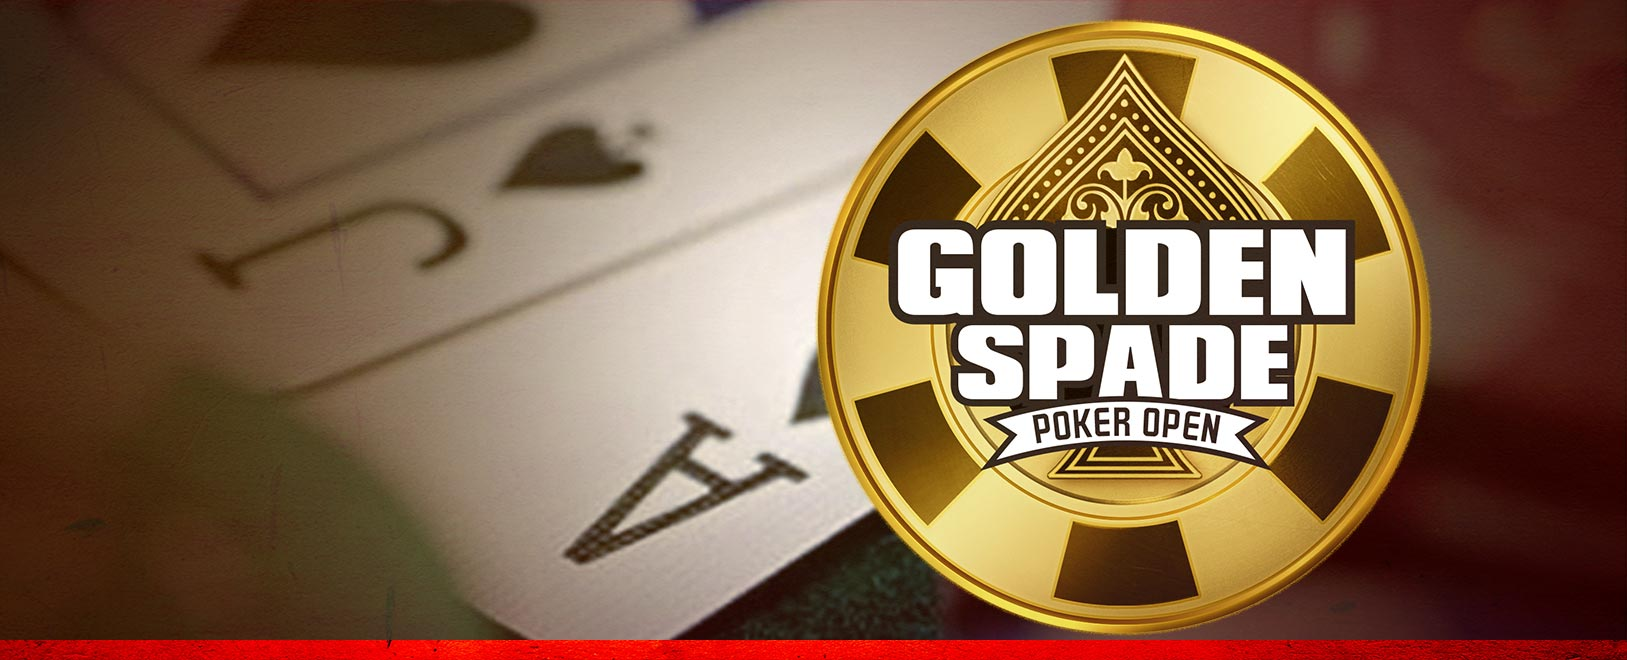 Deposit and Learn Poker and Win Over 10 Million at GSPO